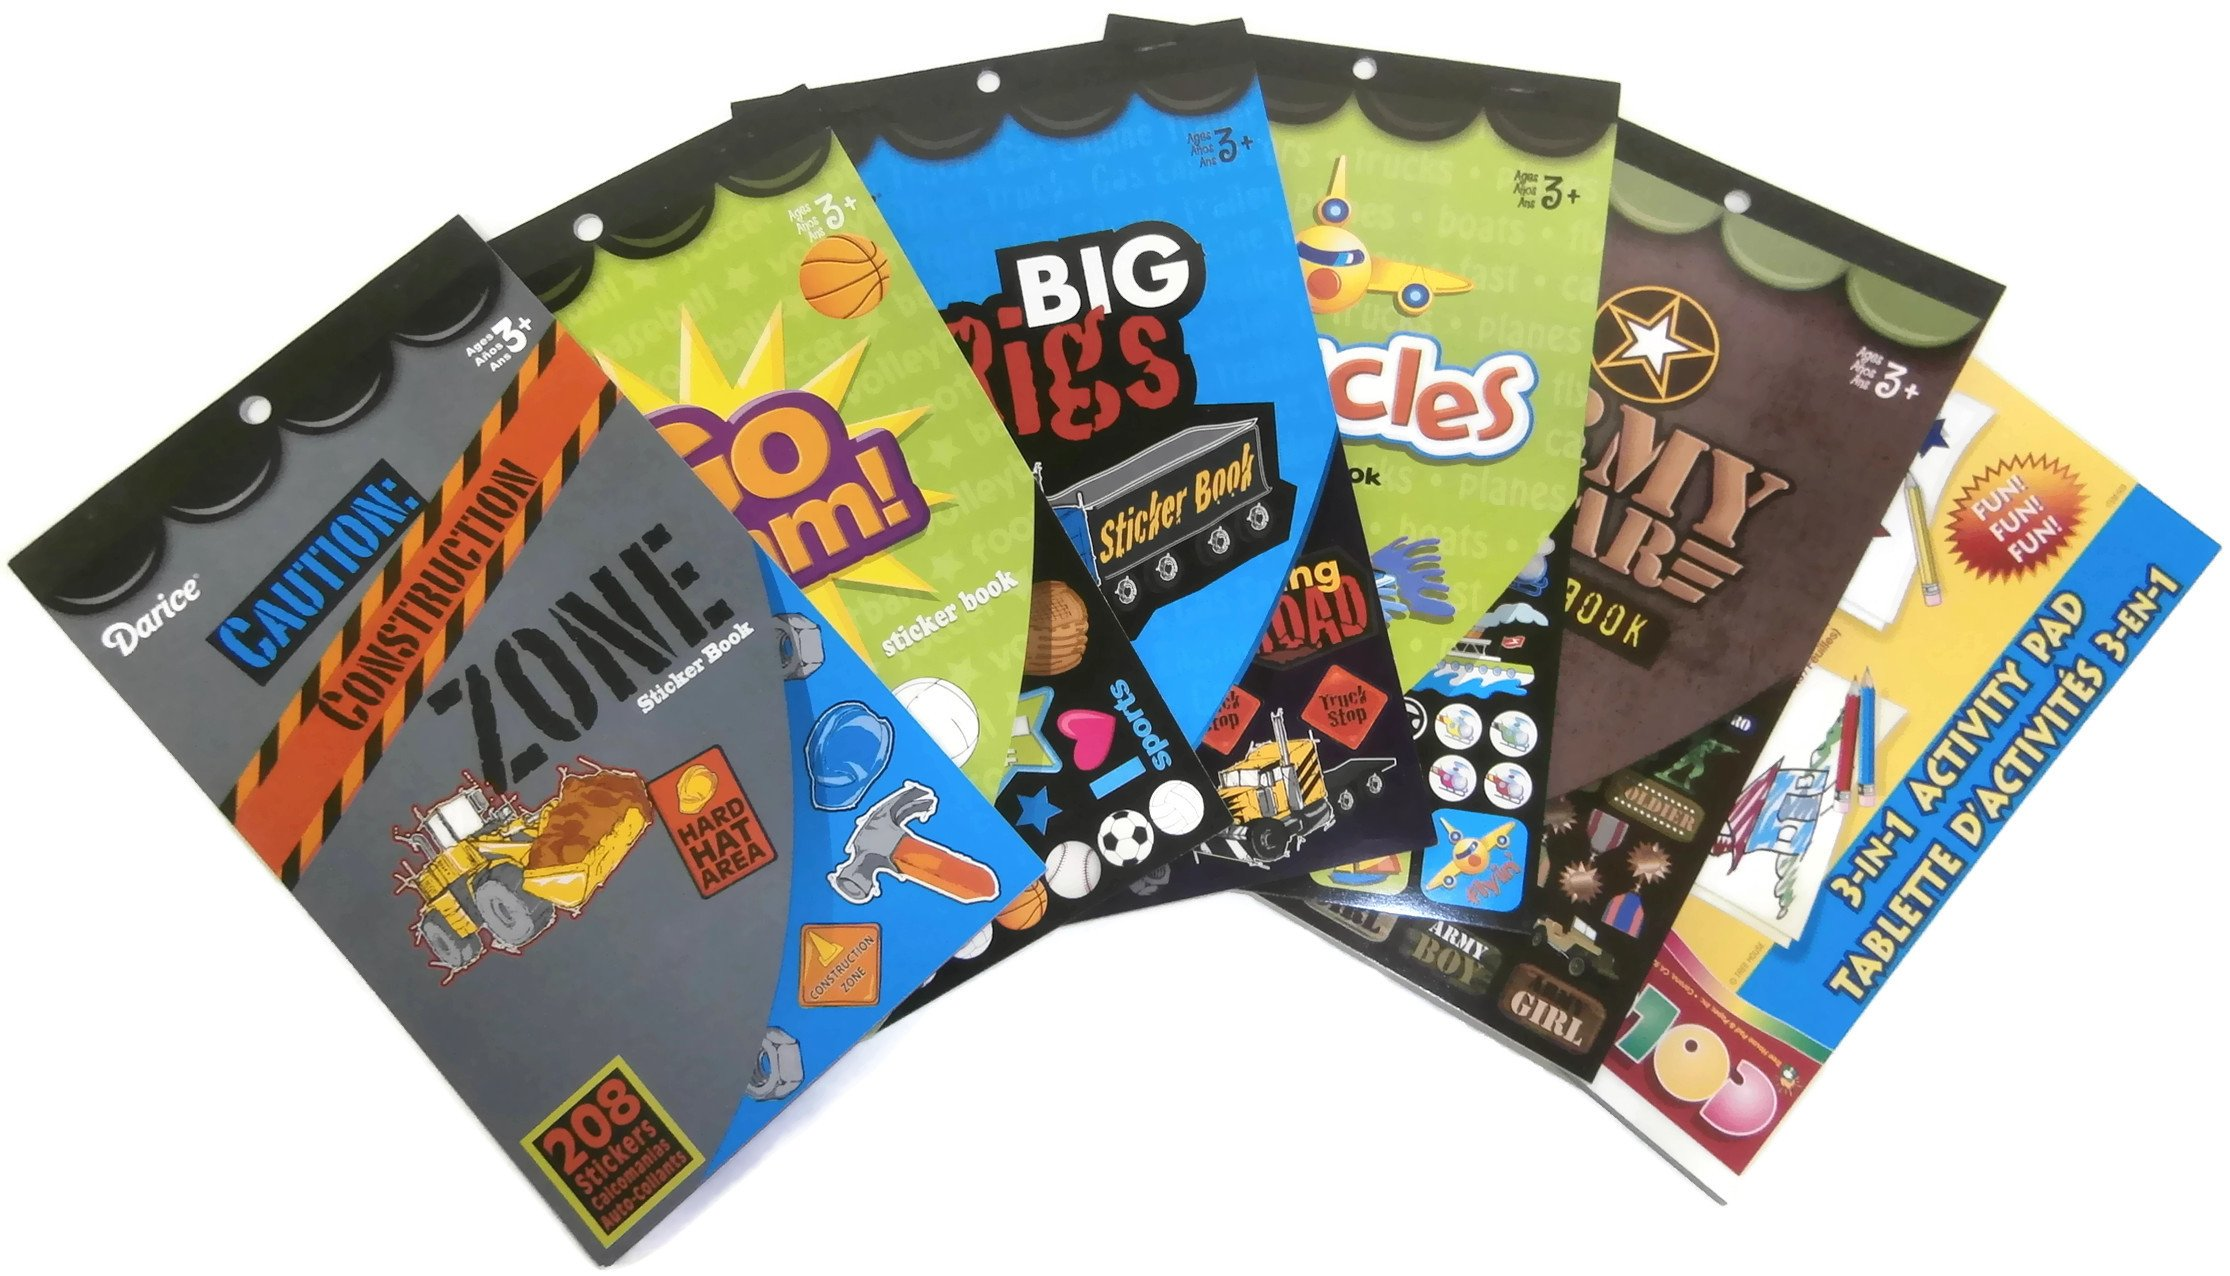 5 Boys Sticker Books With Activity Pad And 1846 Stickers Including Construction Zone, Army, Big Rigs, Vehicles and Sports